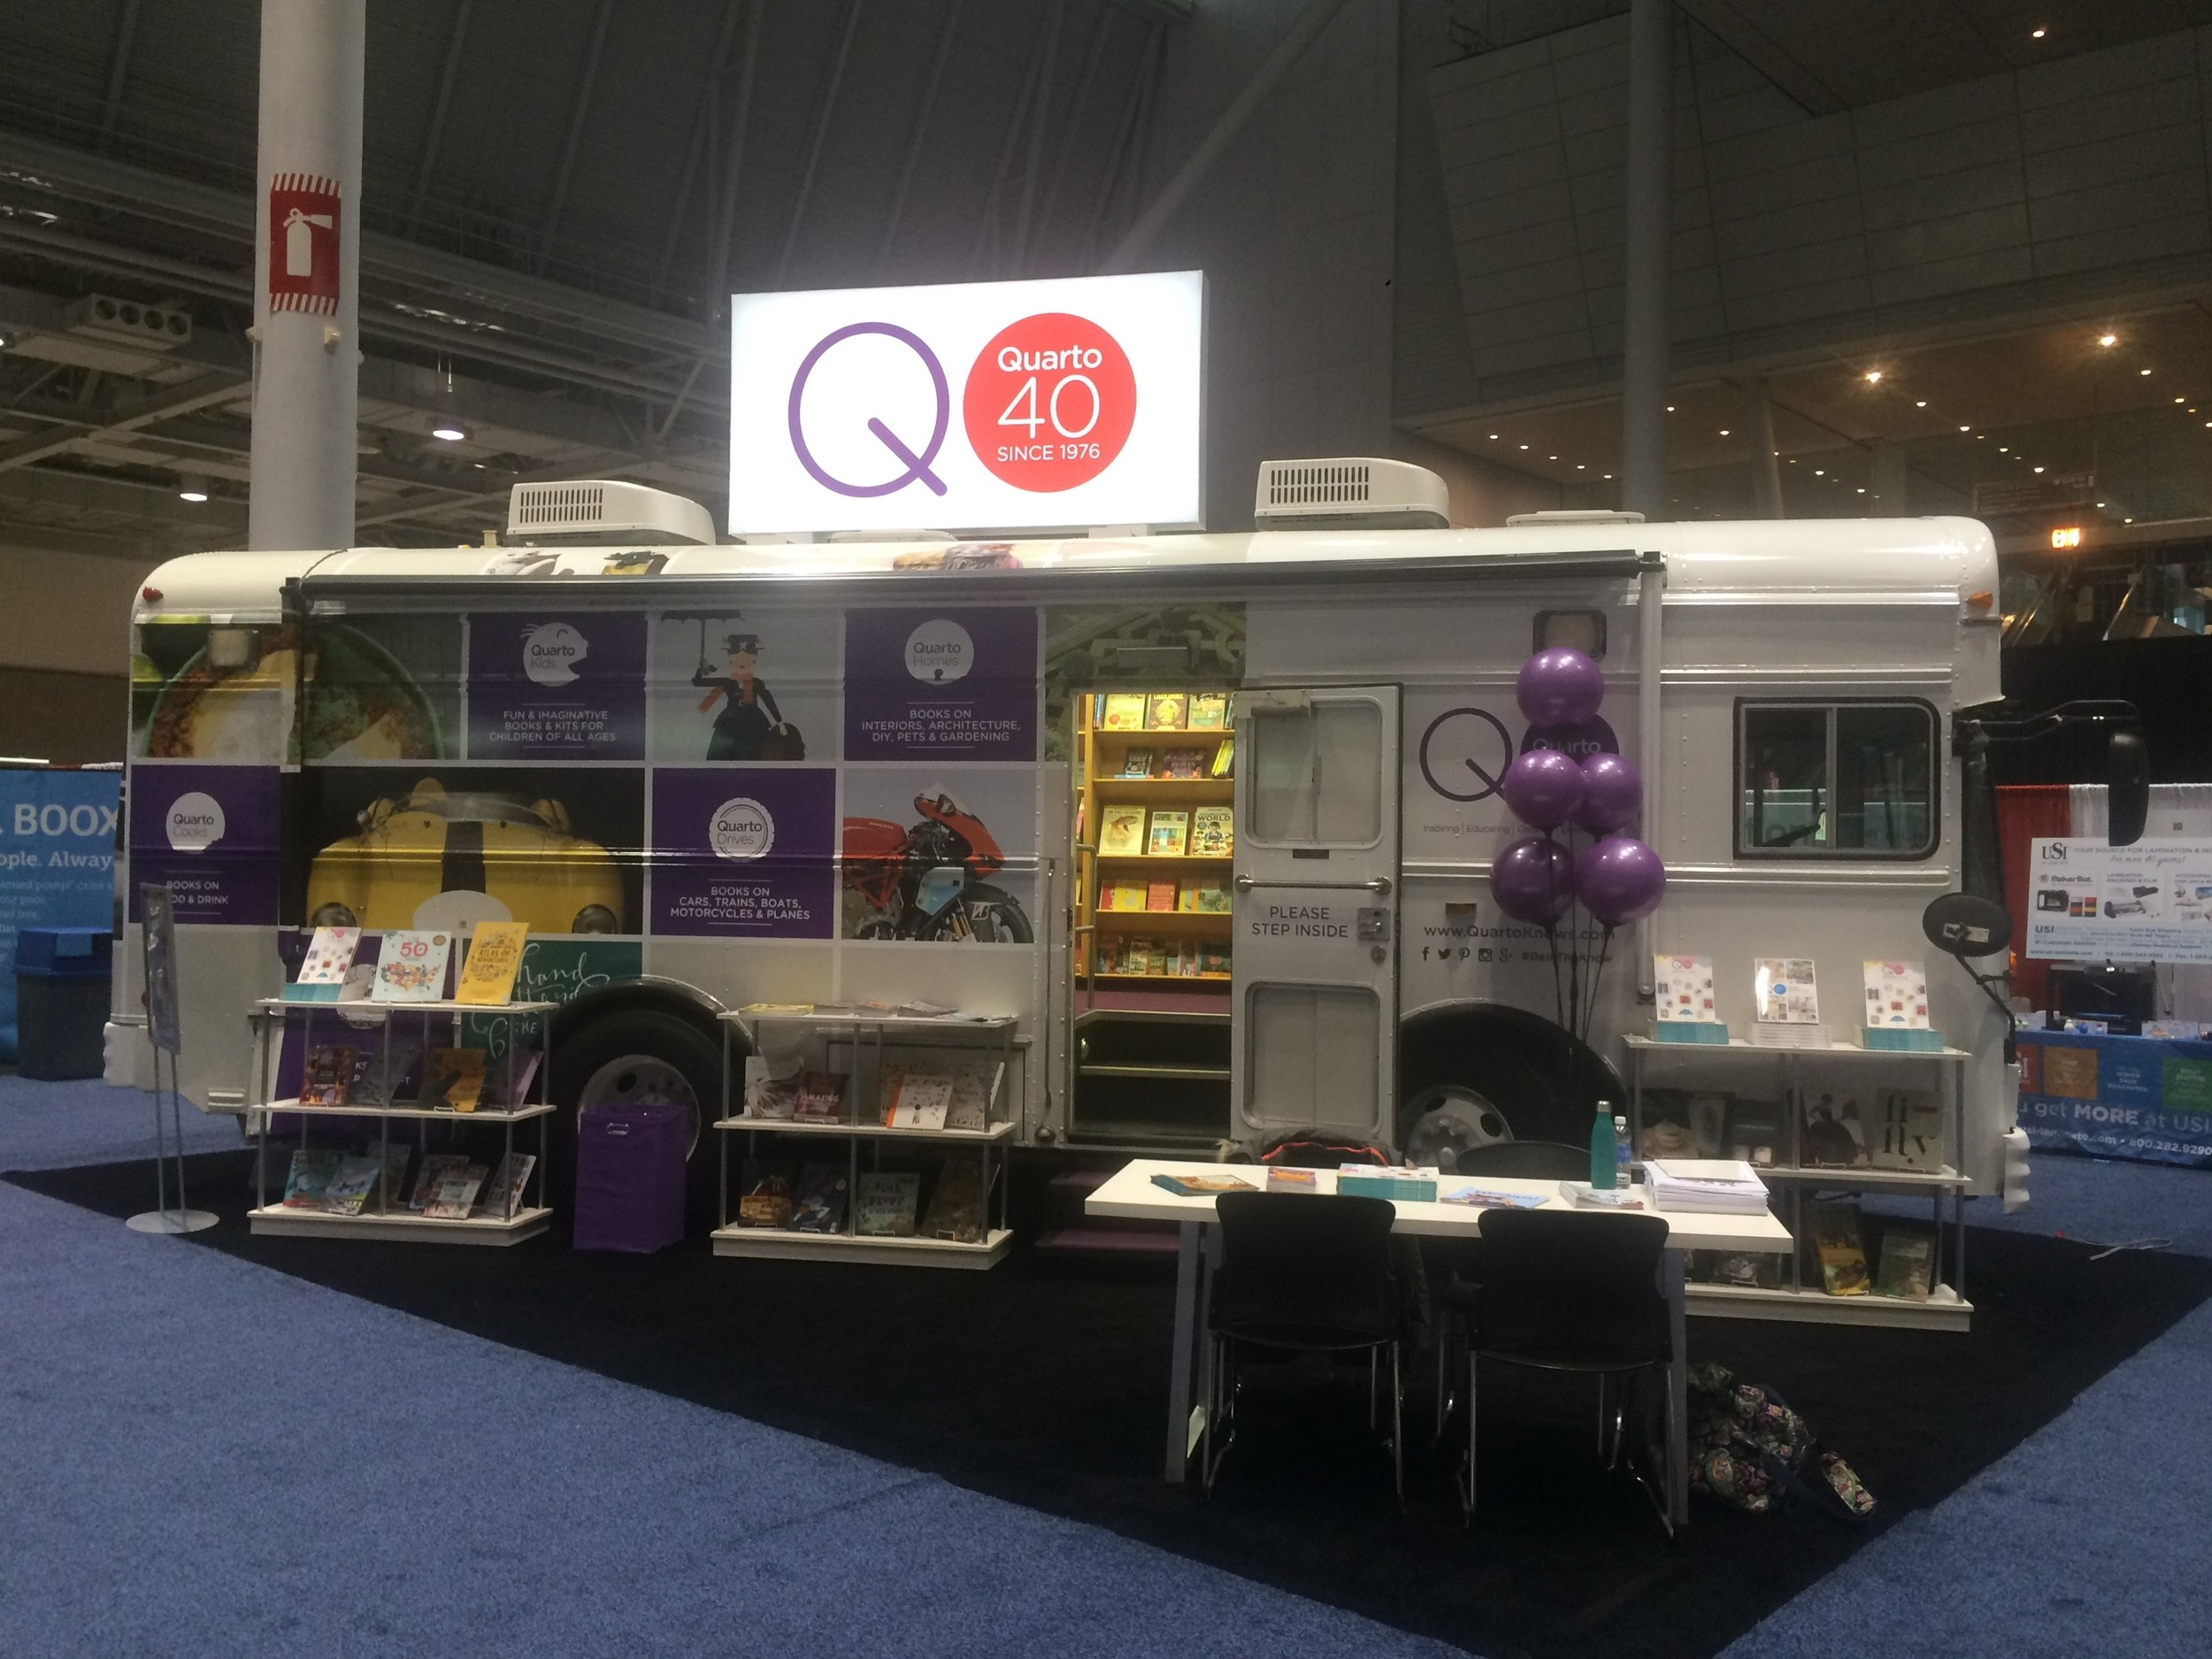 40th Anniversary Bus at the American Library Association Fair, January 8-11, 2016